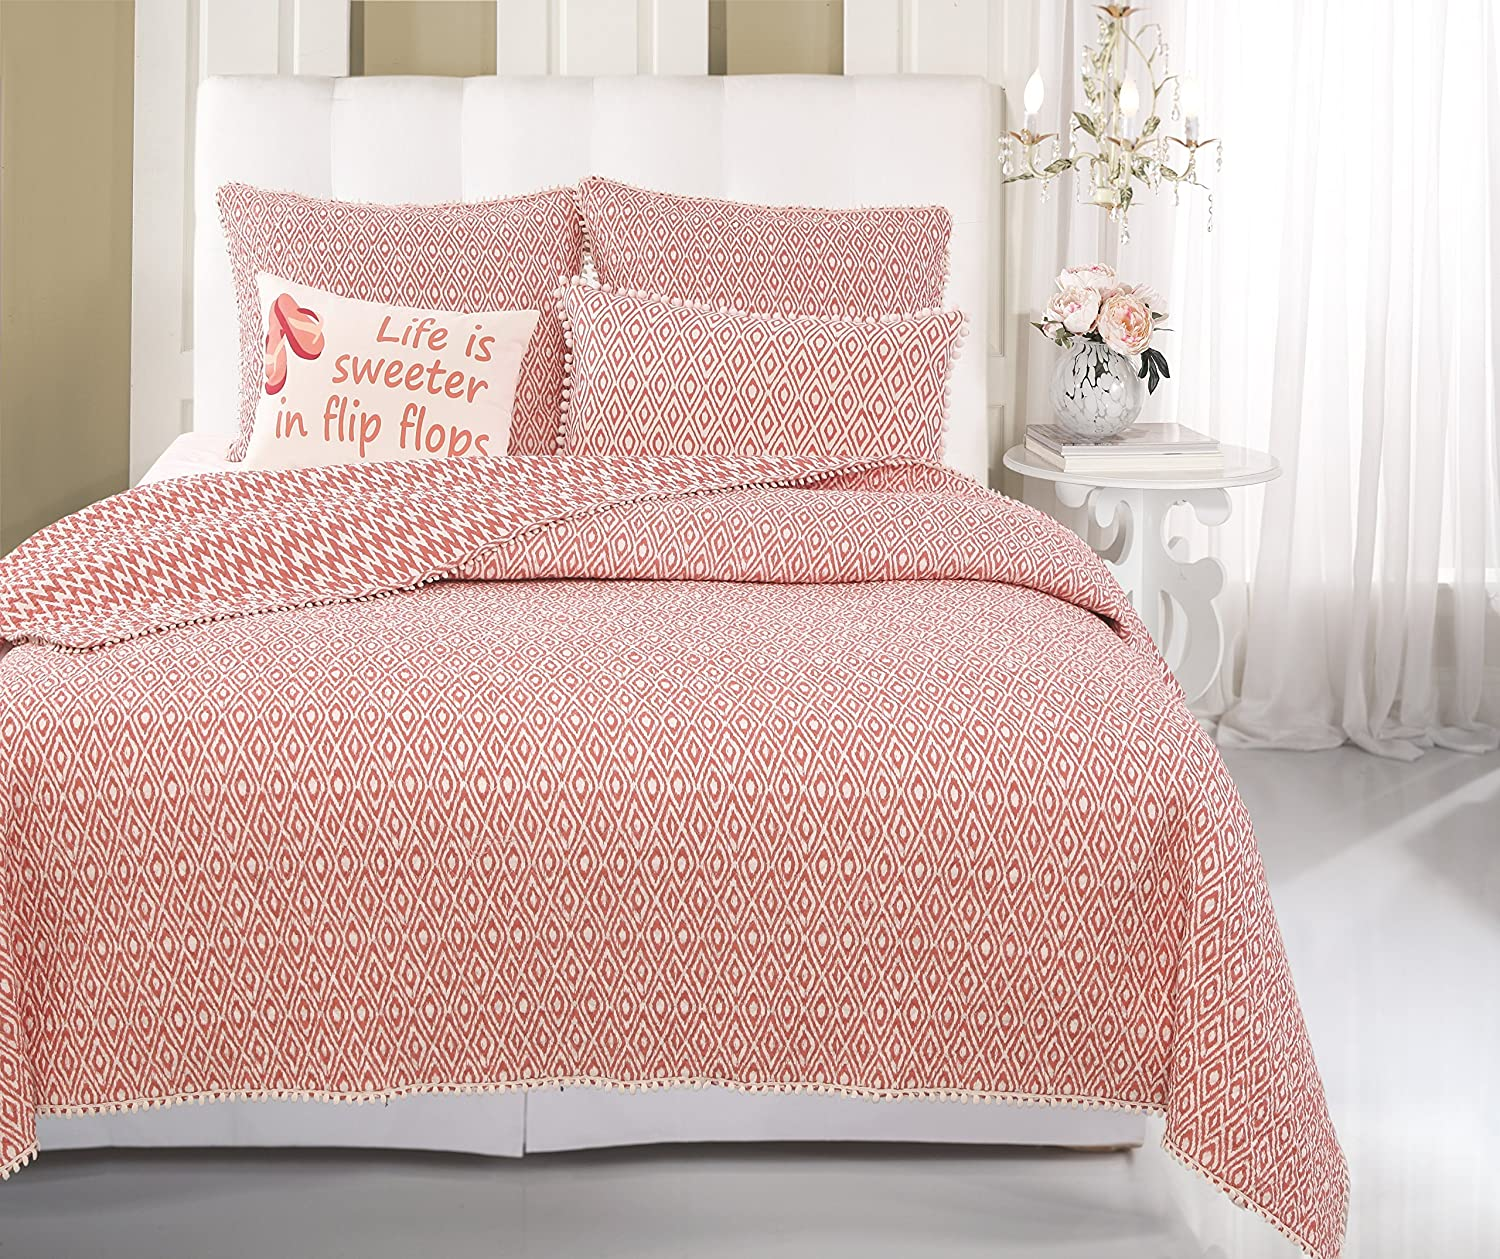 Greenland Home 2-Piece Belize Quilt Set, Coral, Twin Greenland Home Fashions GL-1603RT